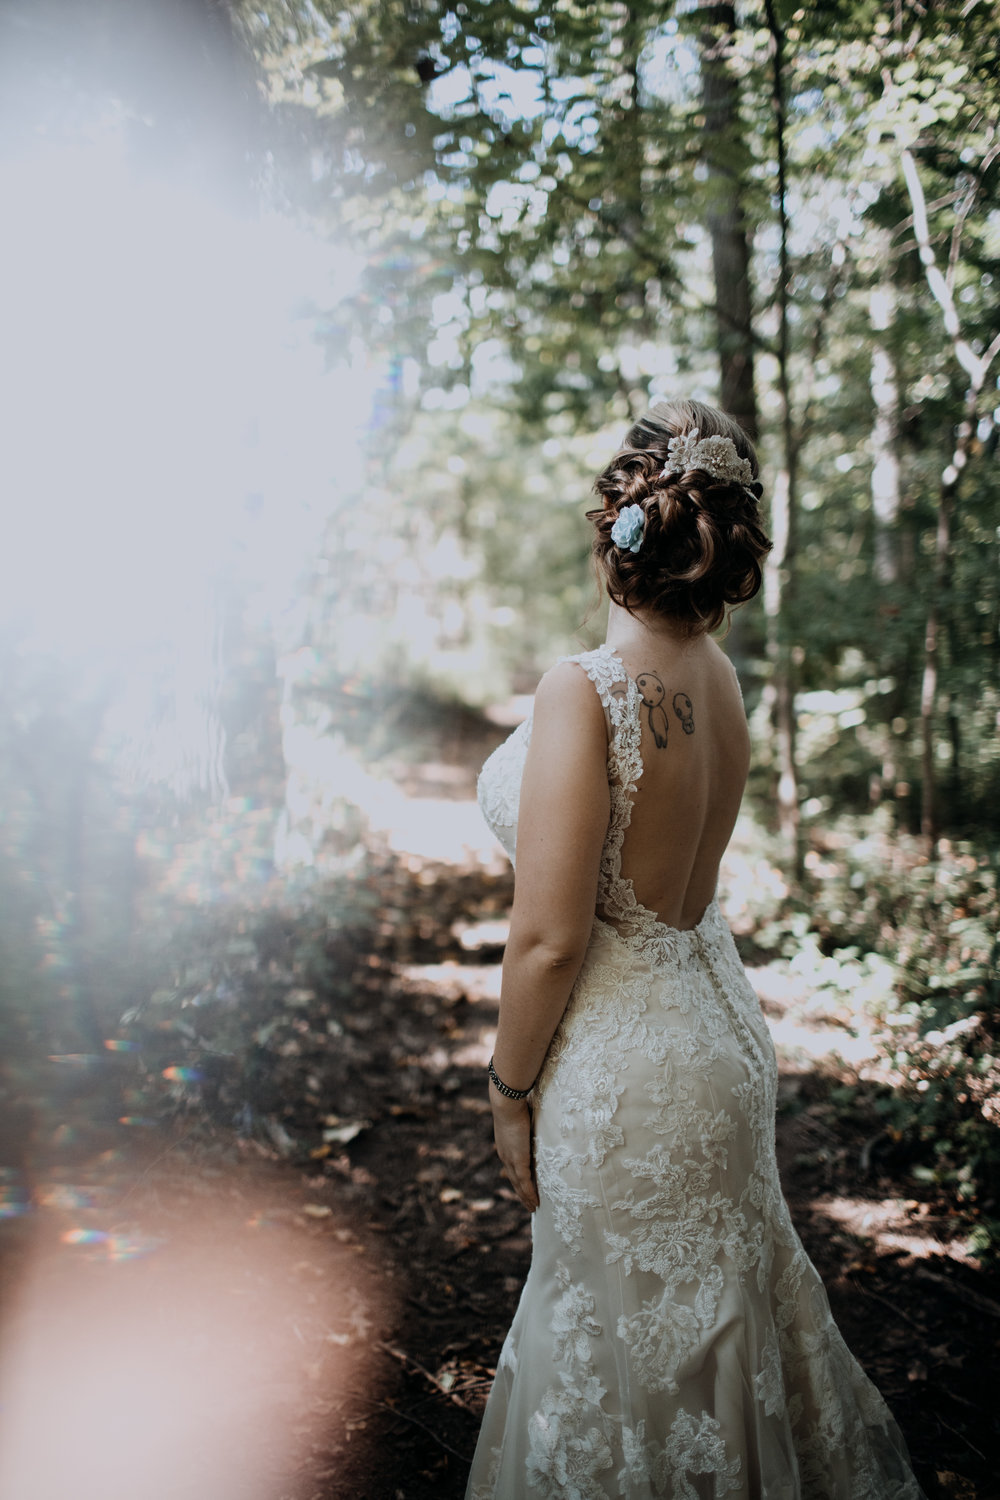 Cambria_Creative_Photographer_York_Camp_Cann-edi-on_wedding-3272.jpg